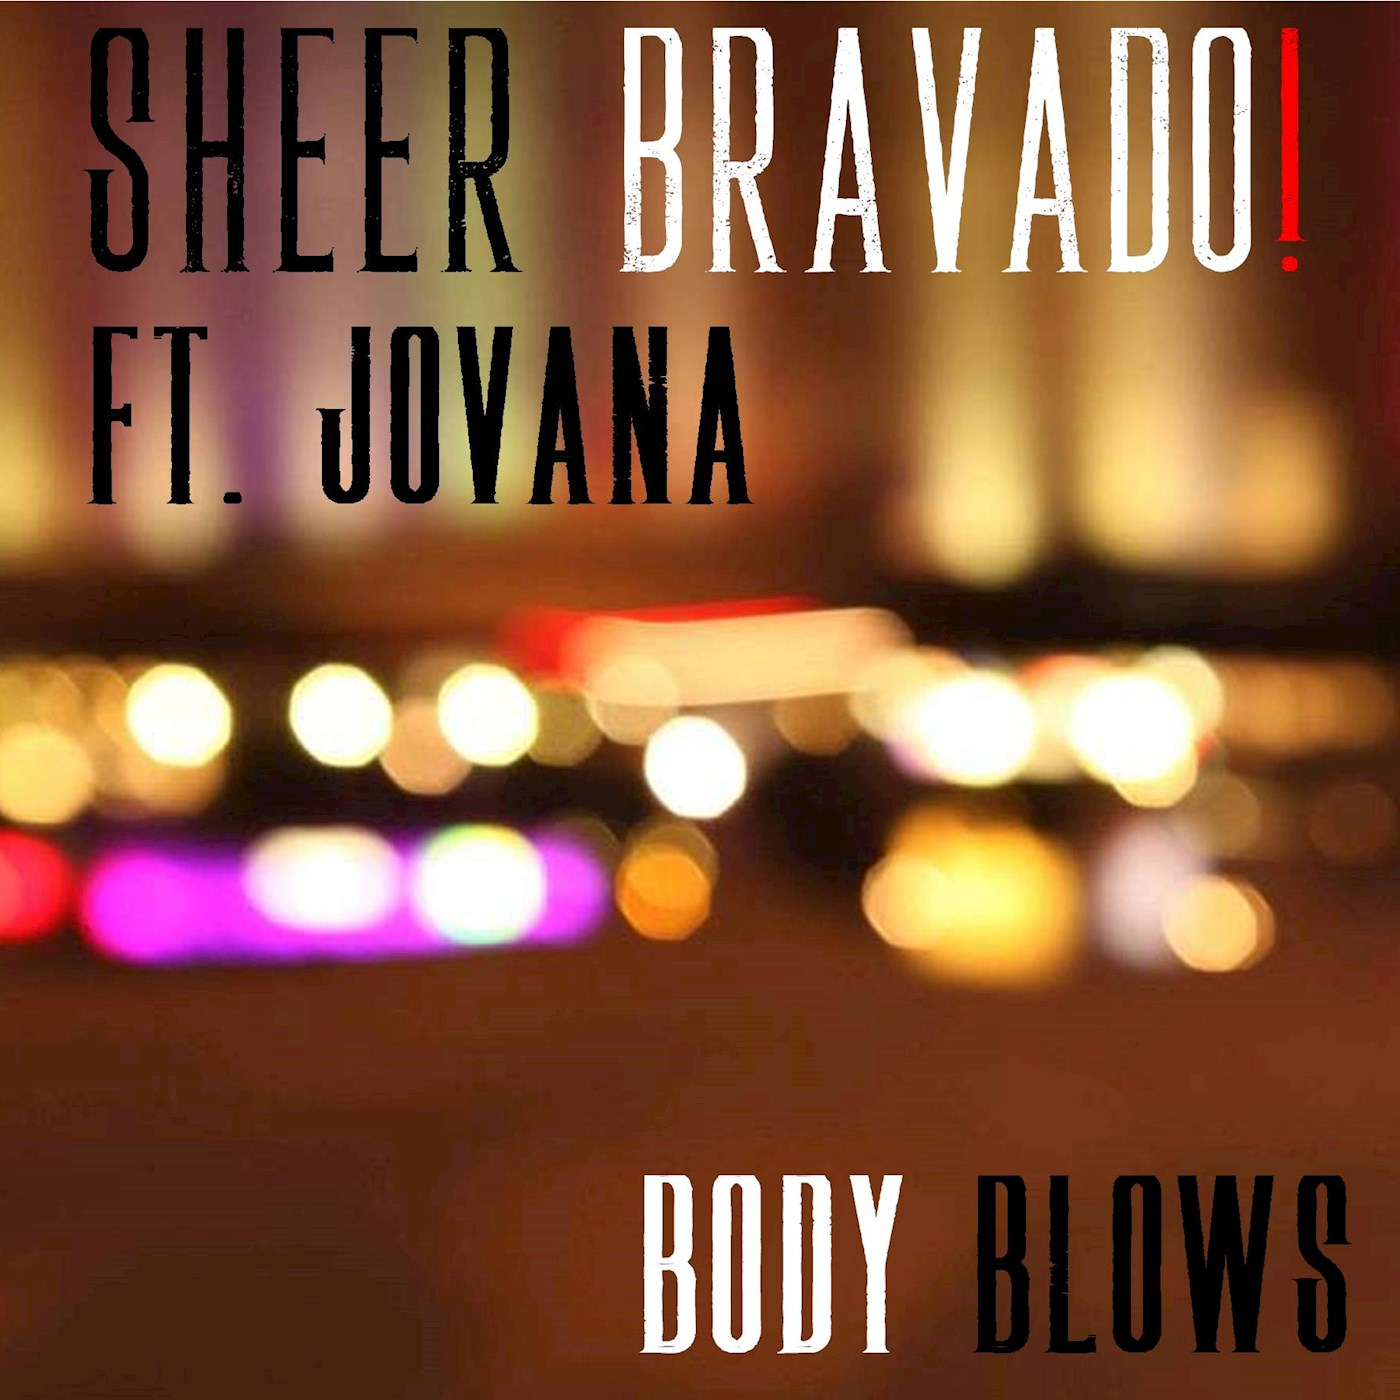 Sheer Bravado Body Blows